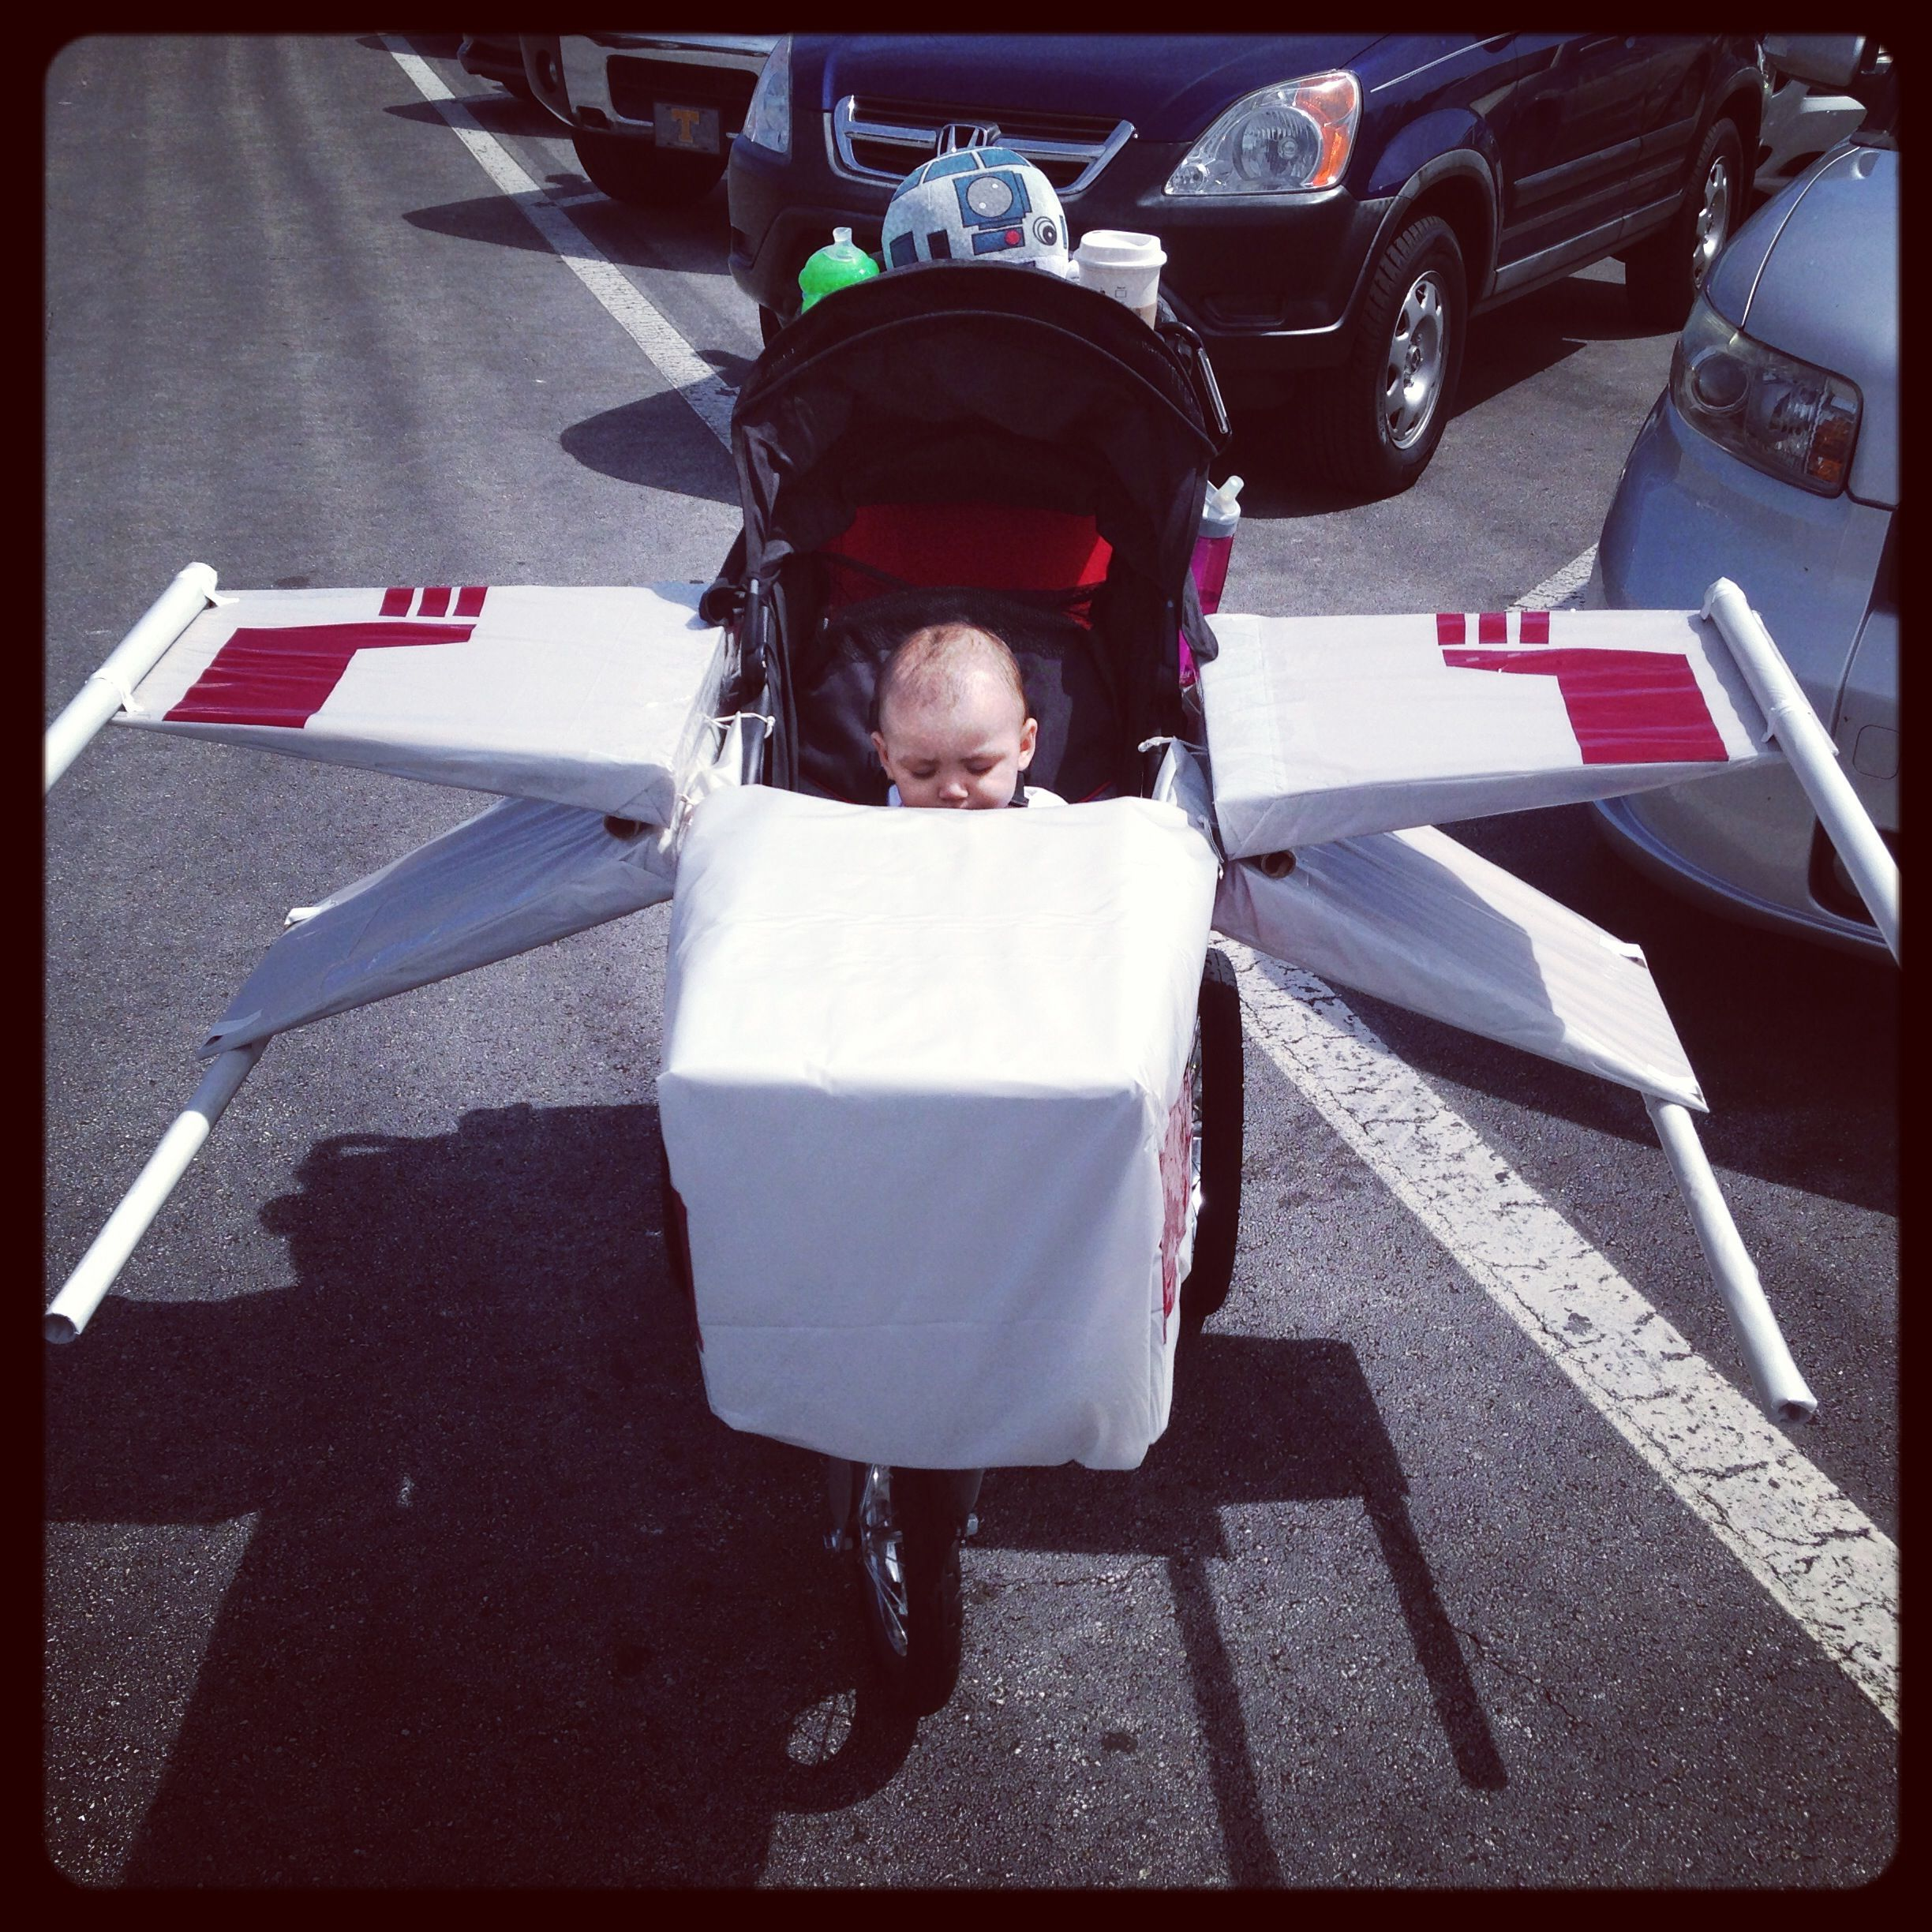 x wing stroller my husband turned our sons stroller into an x wing